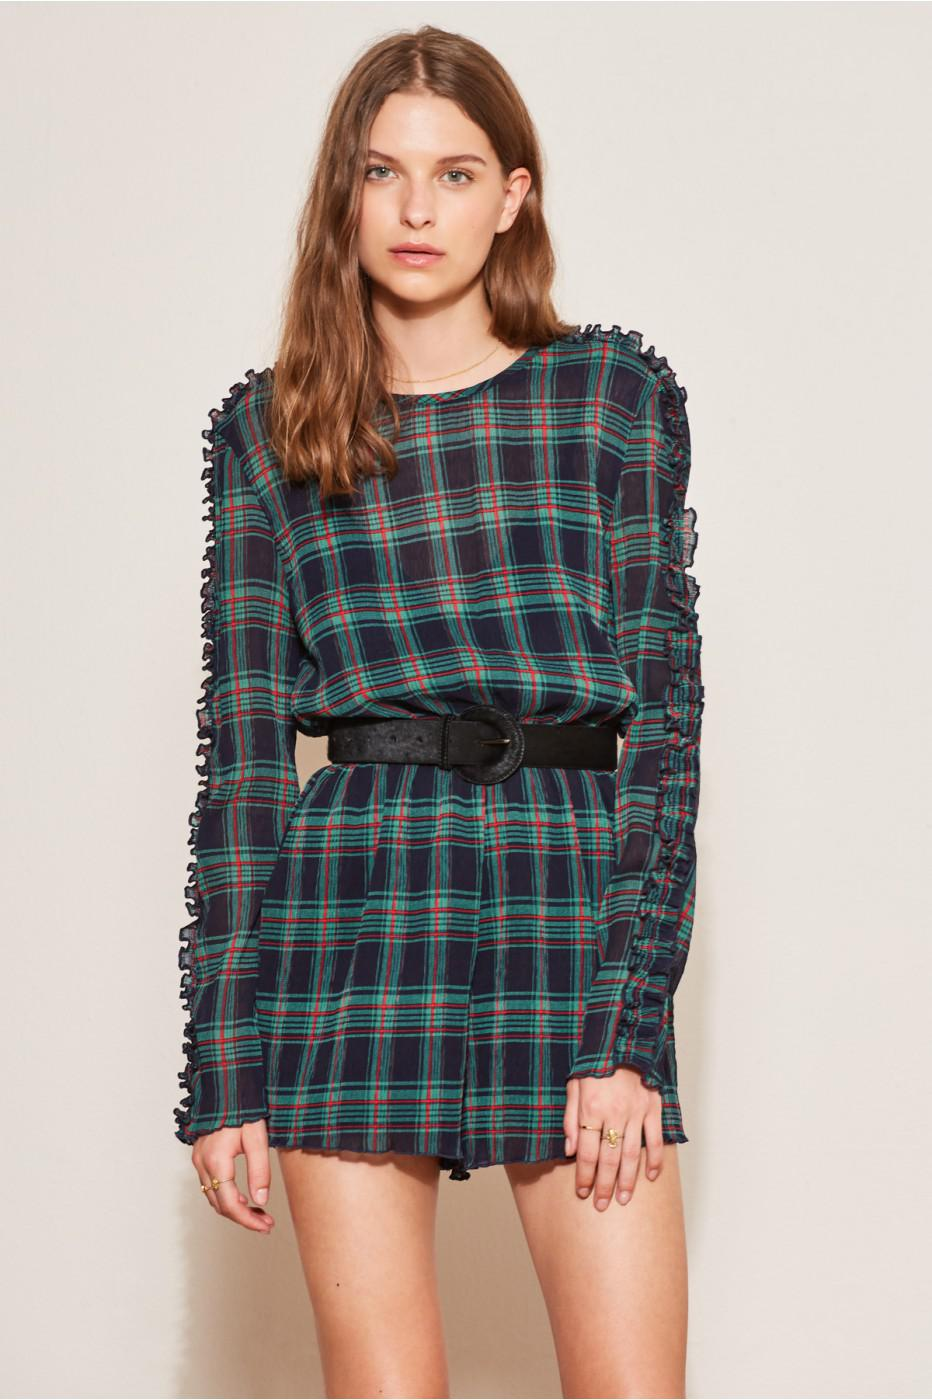 2d553614f6e5 Lyst - The Fifth Label Zone Tartan Long Sleeve Playsuit in Blue